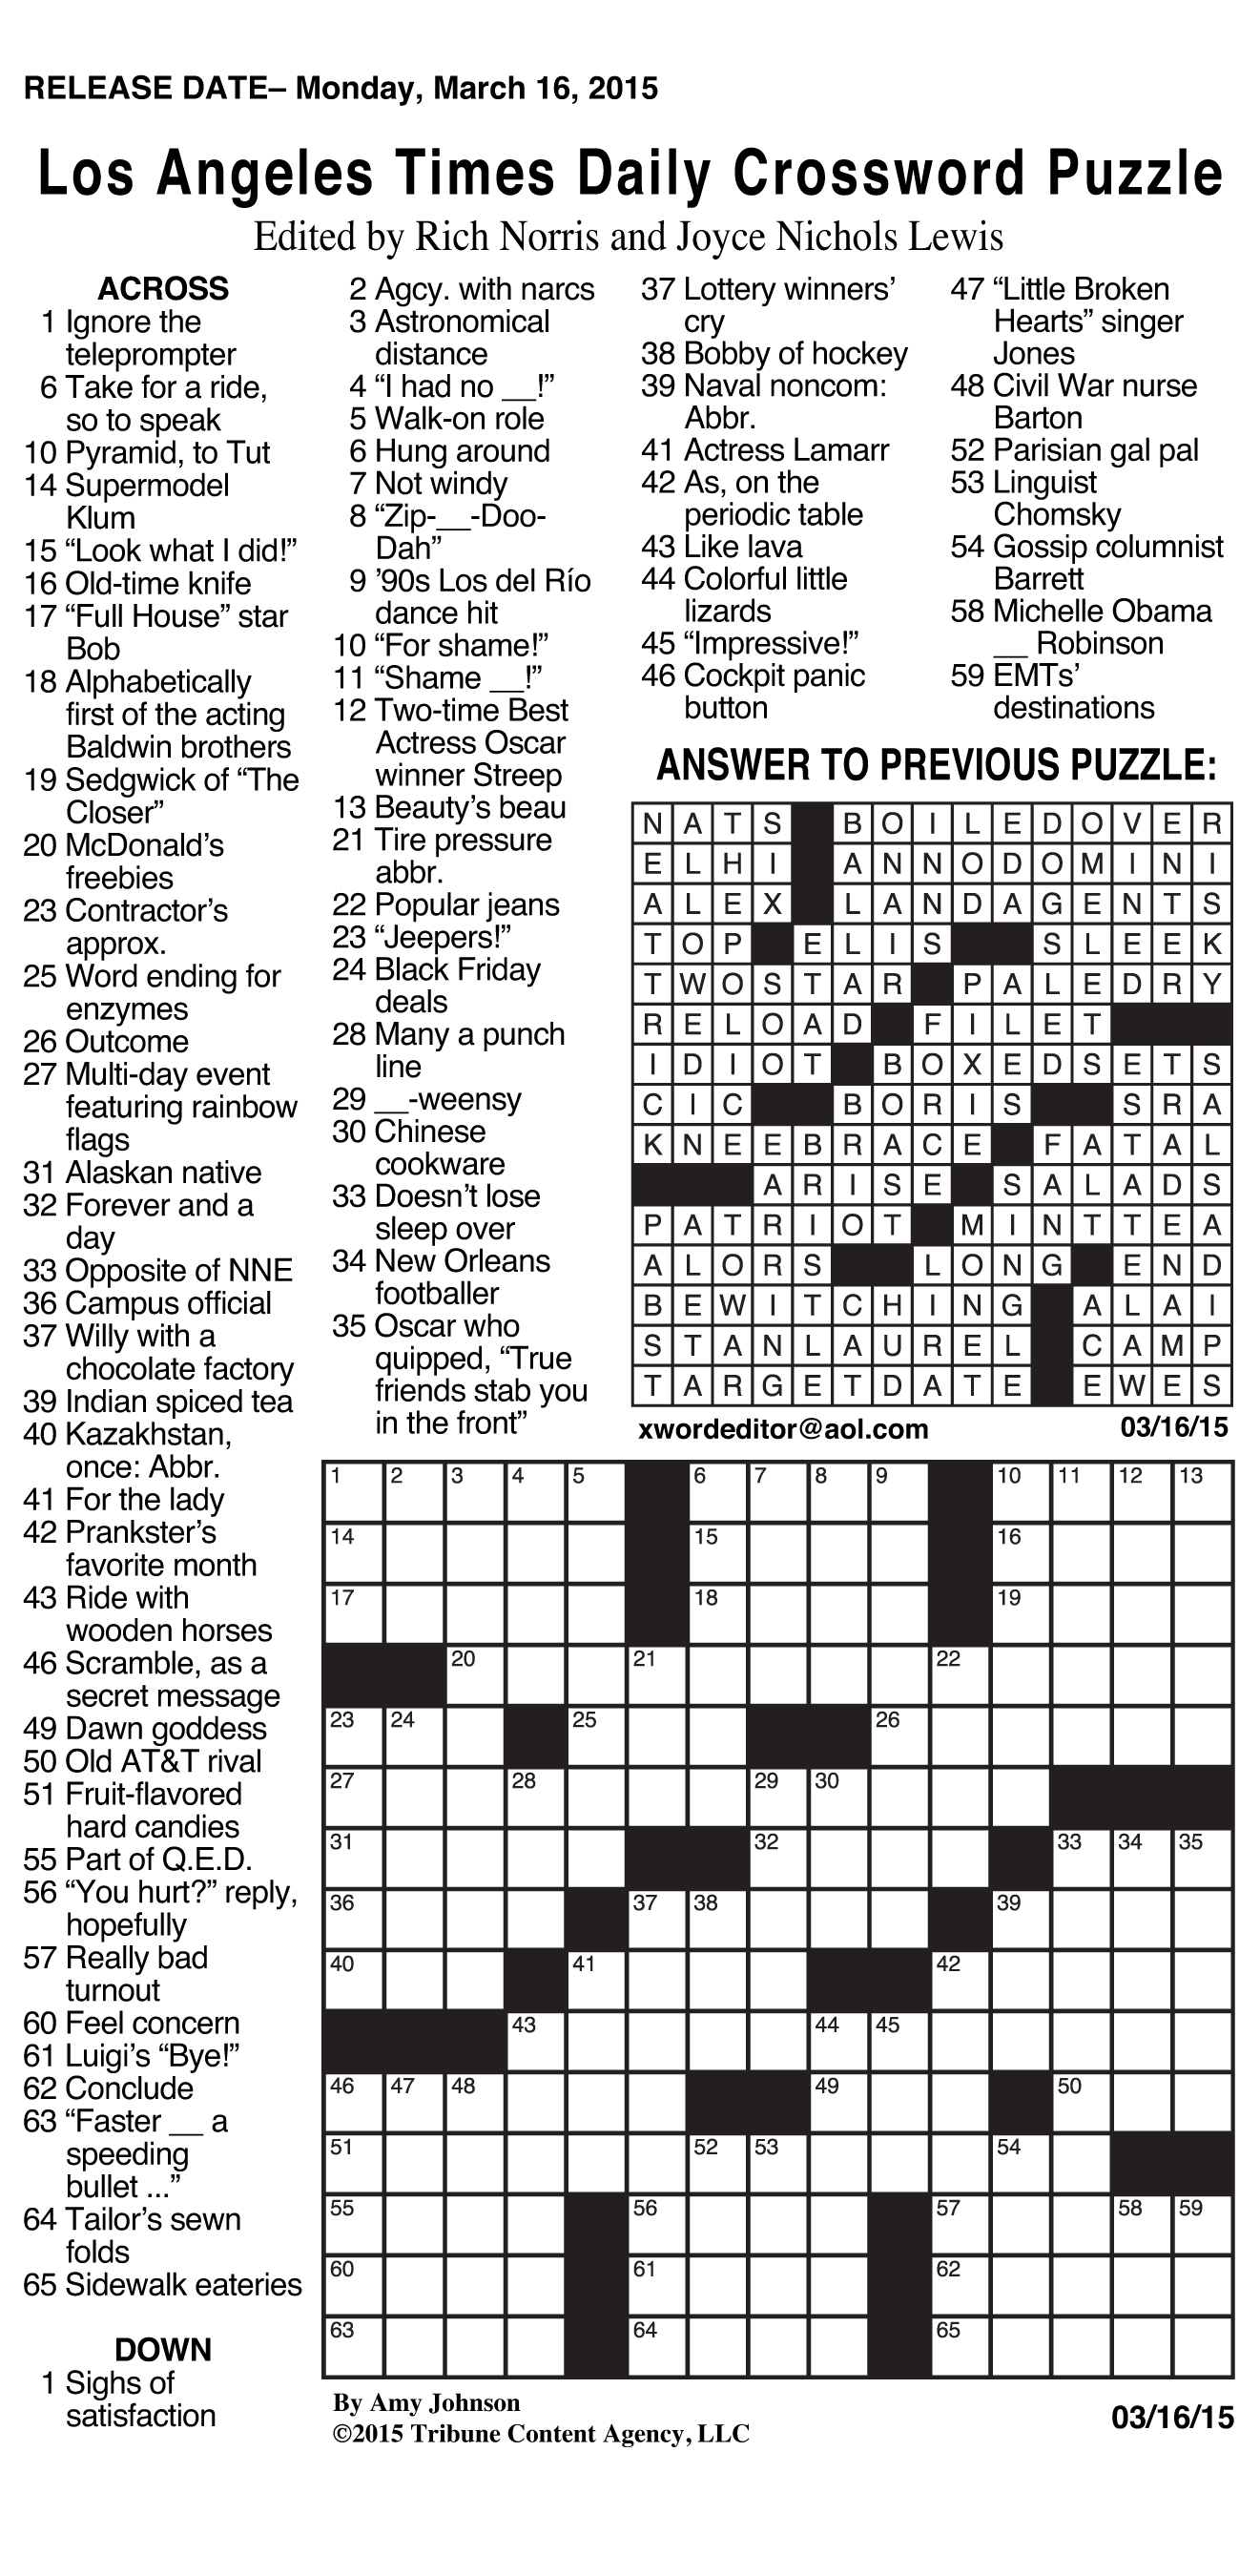 Sample Of Los Angeles Times Daily Crossword Puzzle | Tribune Content - Printable Crossword Puzzles 1978